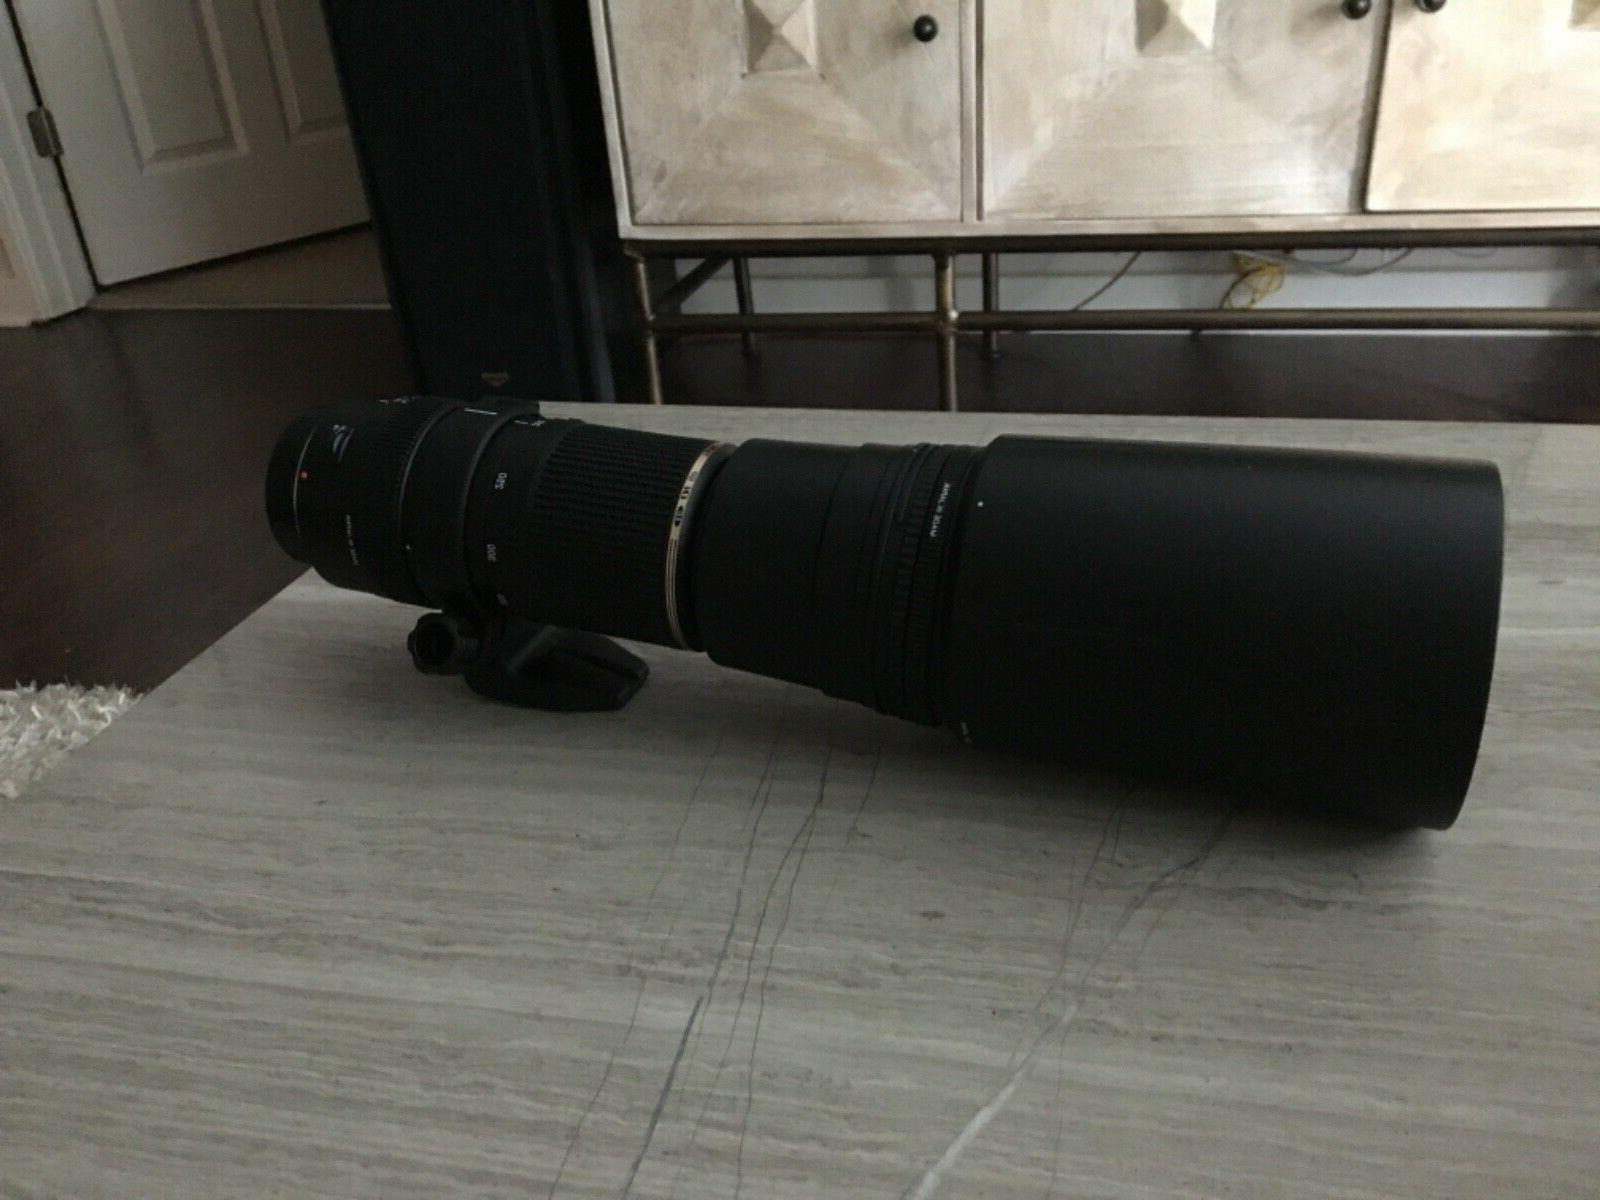 NEW Tamron camera SP AF-200-500mm LD for Canon